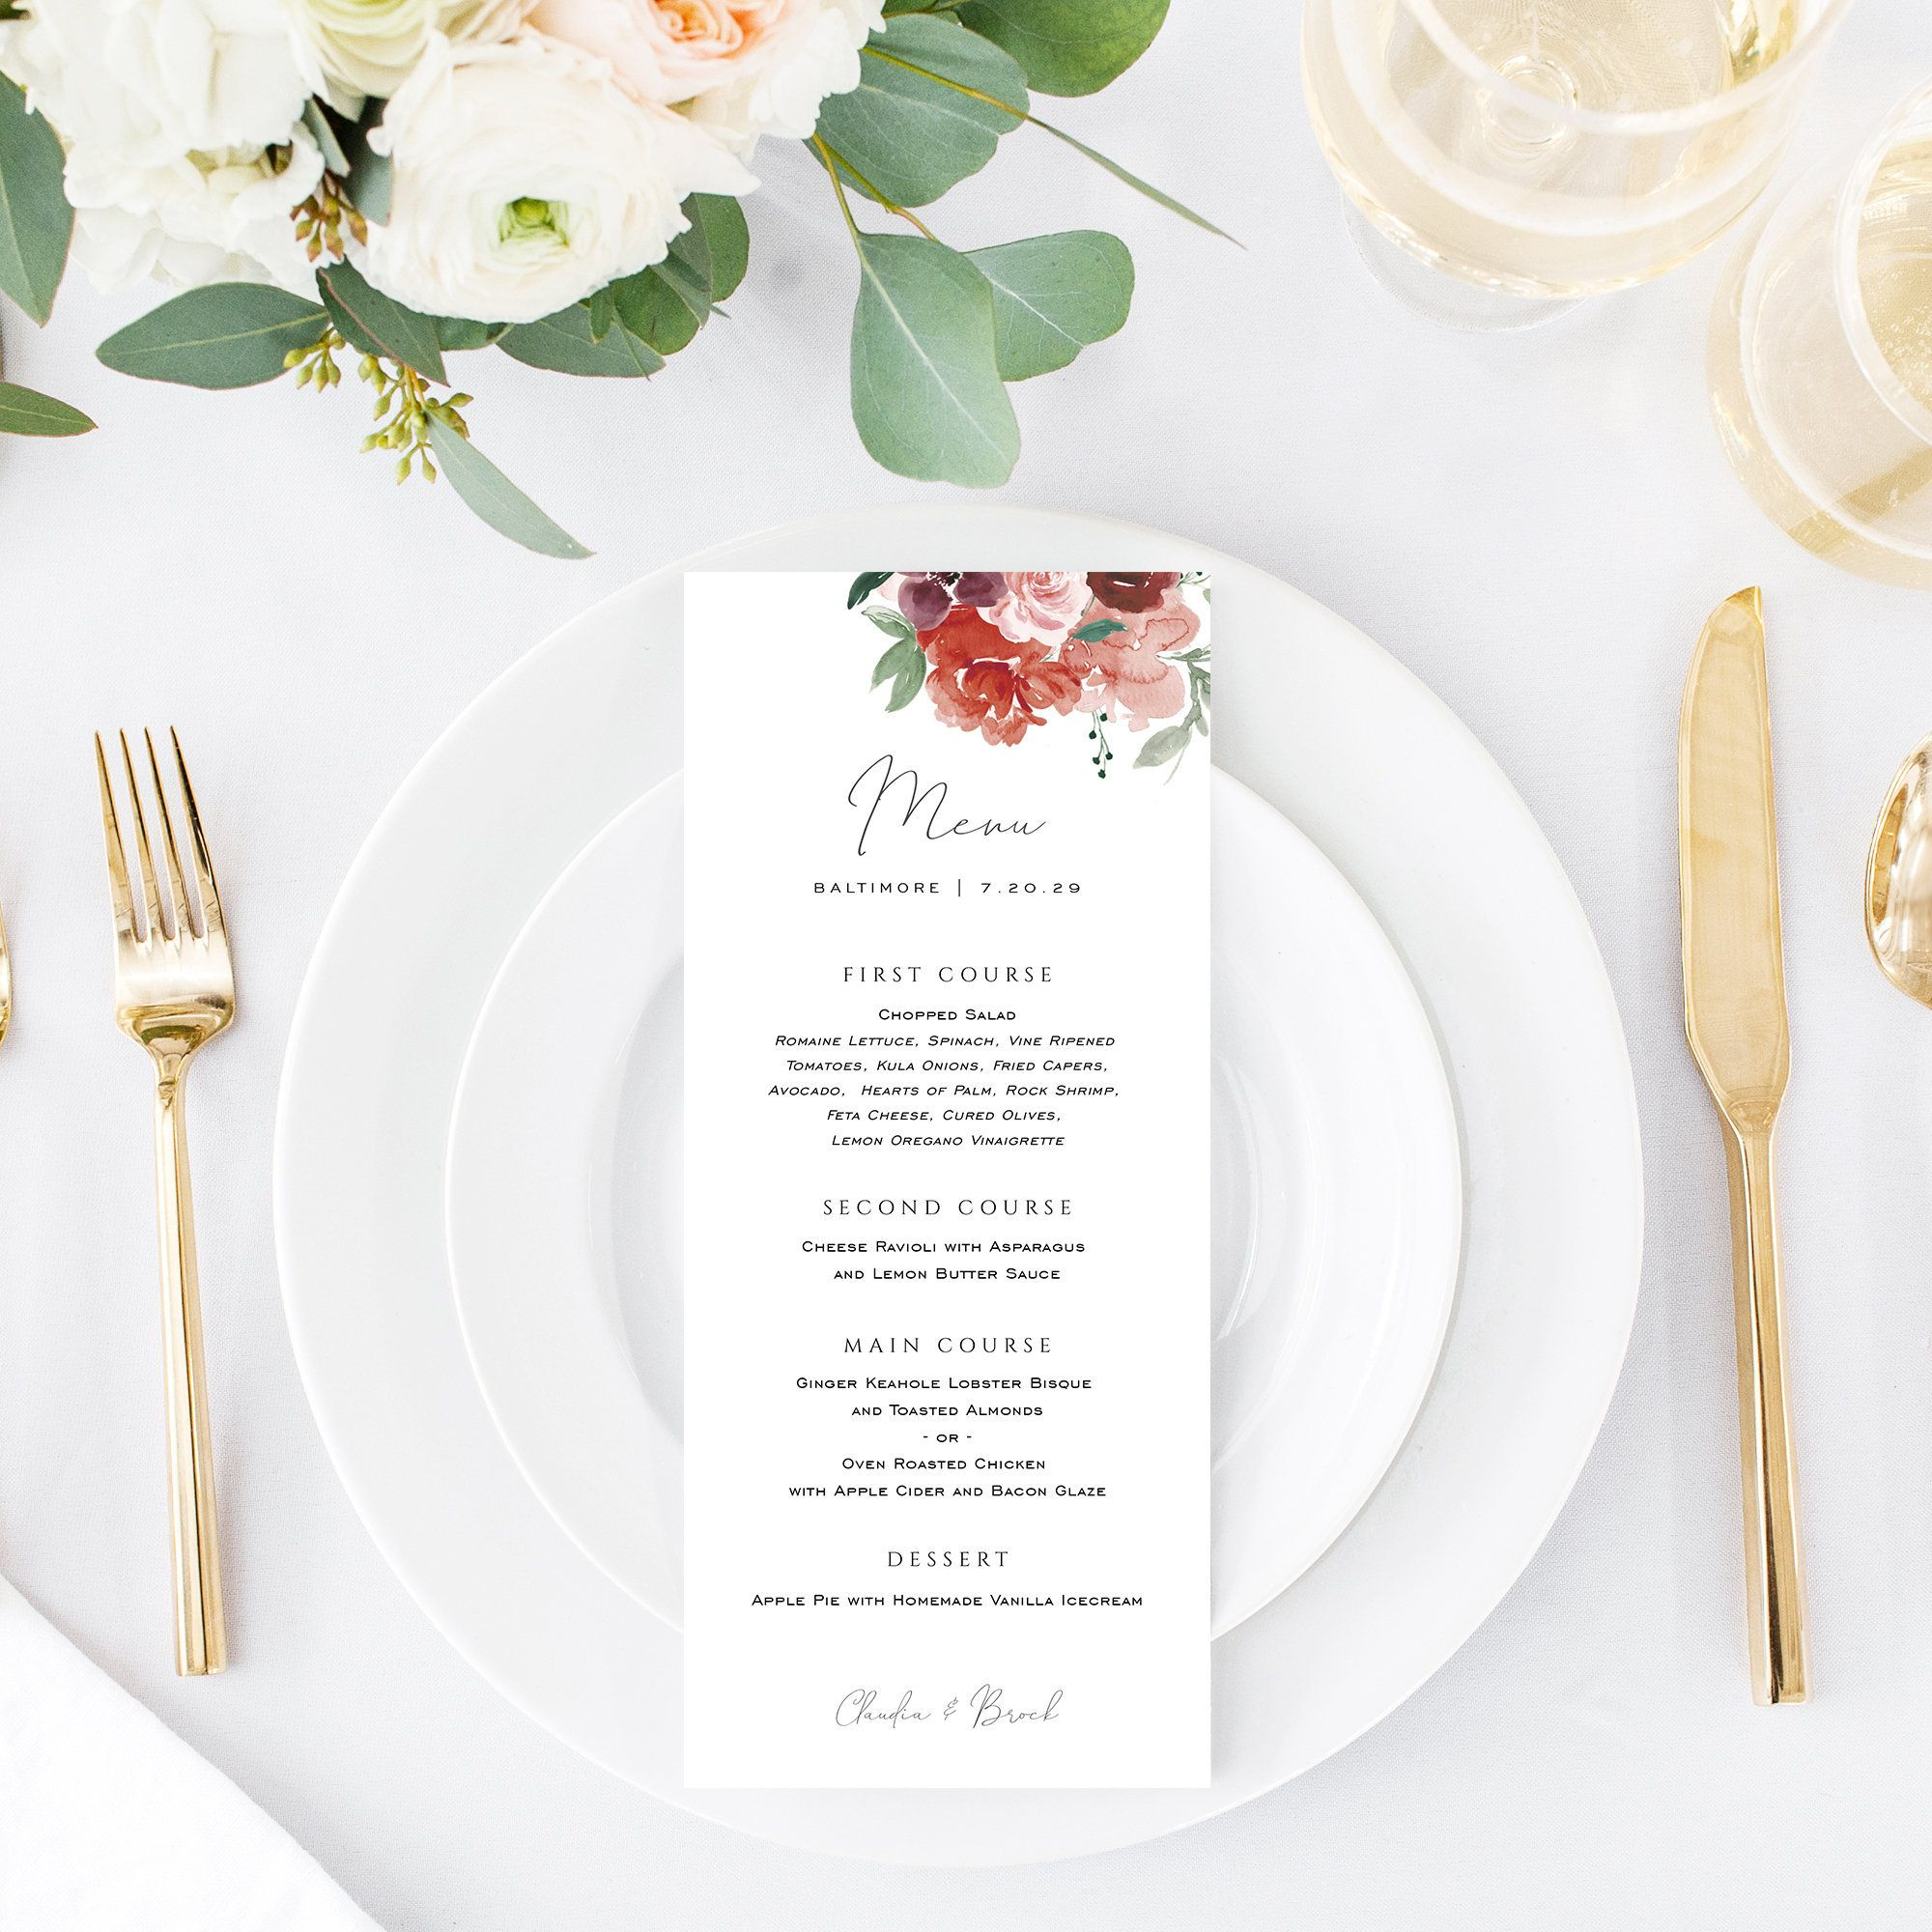 Red Botanical Dinner Menu Printable Wedding Menu Template Etsy In 2021 Printable Wedding Menu Wedding Menu Template Menu Card Template